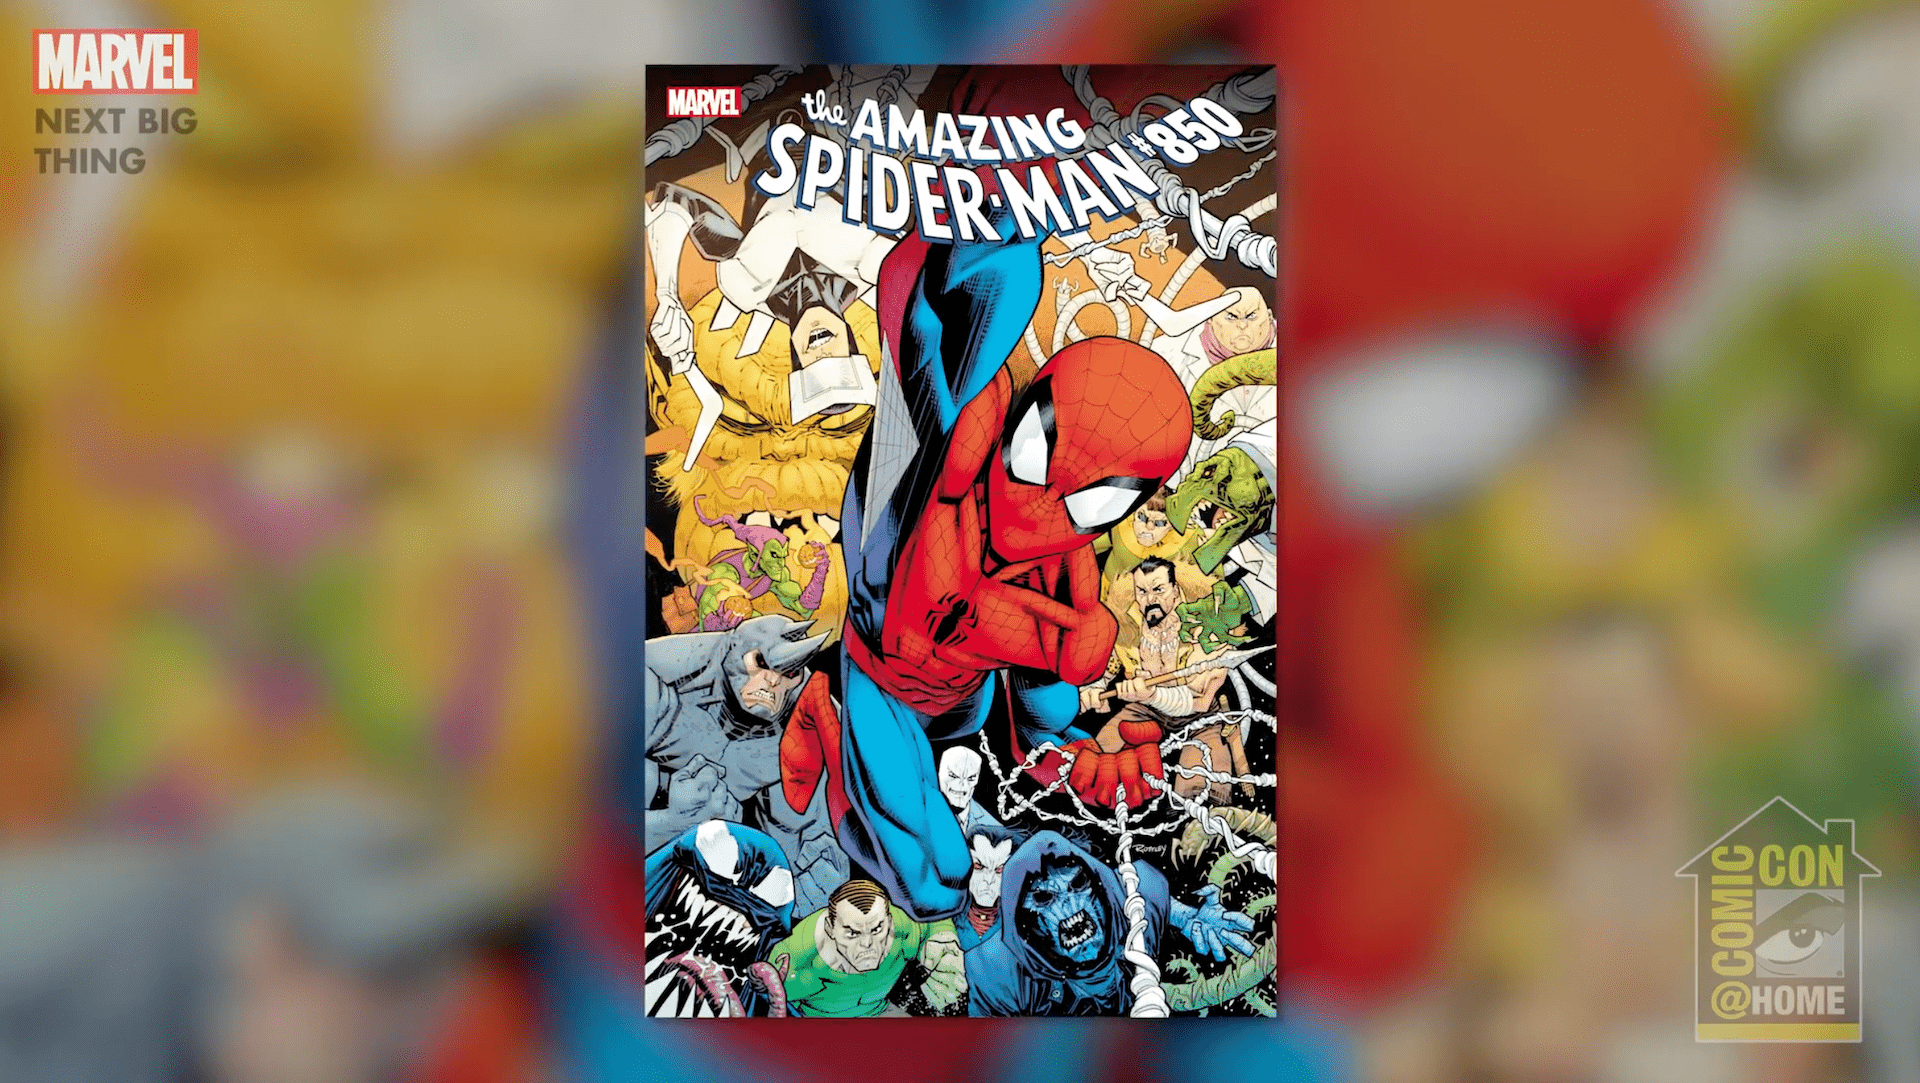 The 'Next Big Thing' panel gives details on Nick Spencer's Spider-Man and the milestone #850 issue.